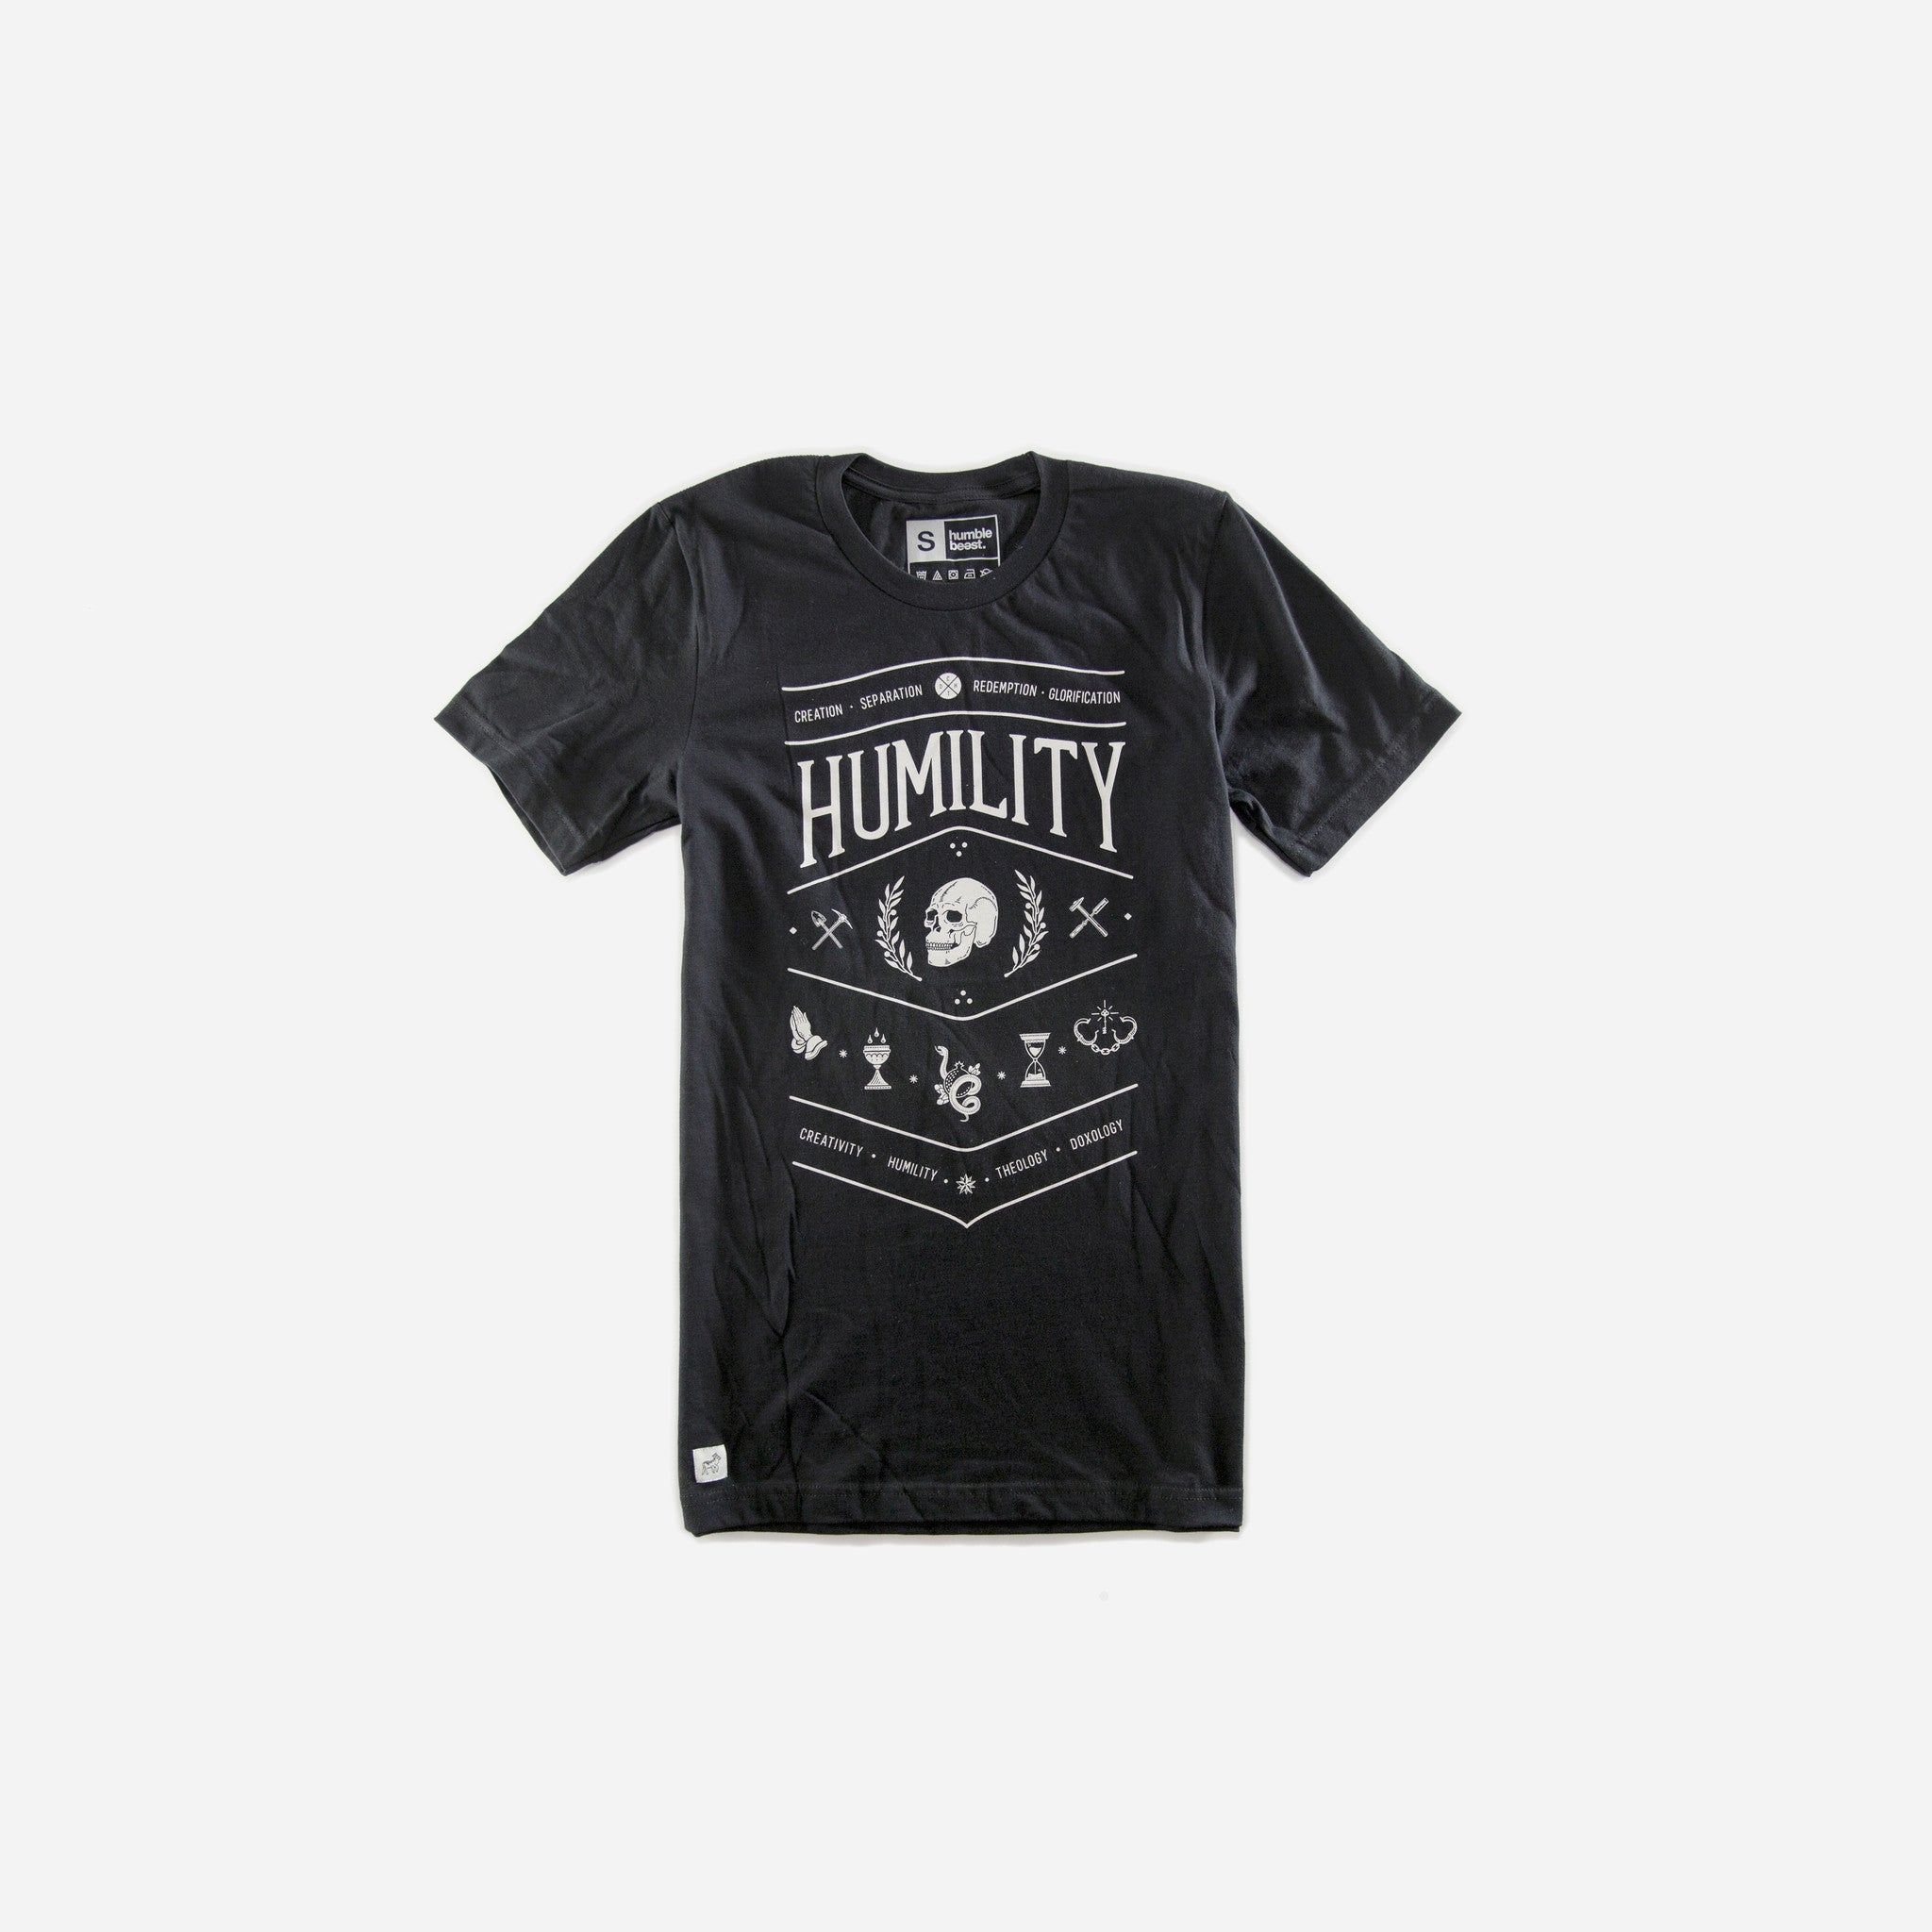 CHTD Humility T-Shirt